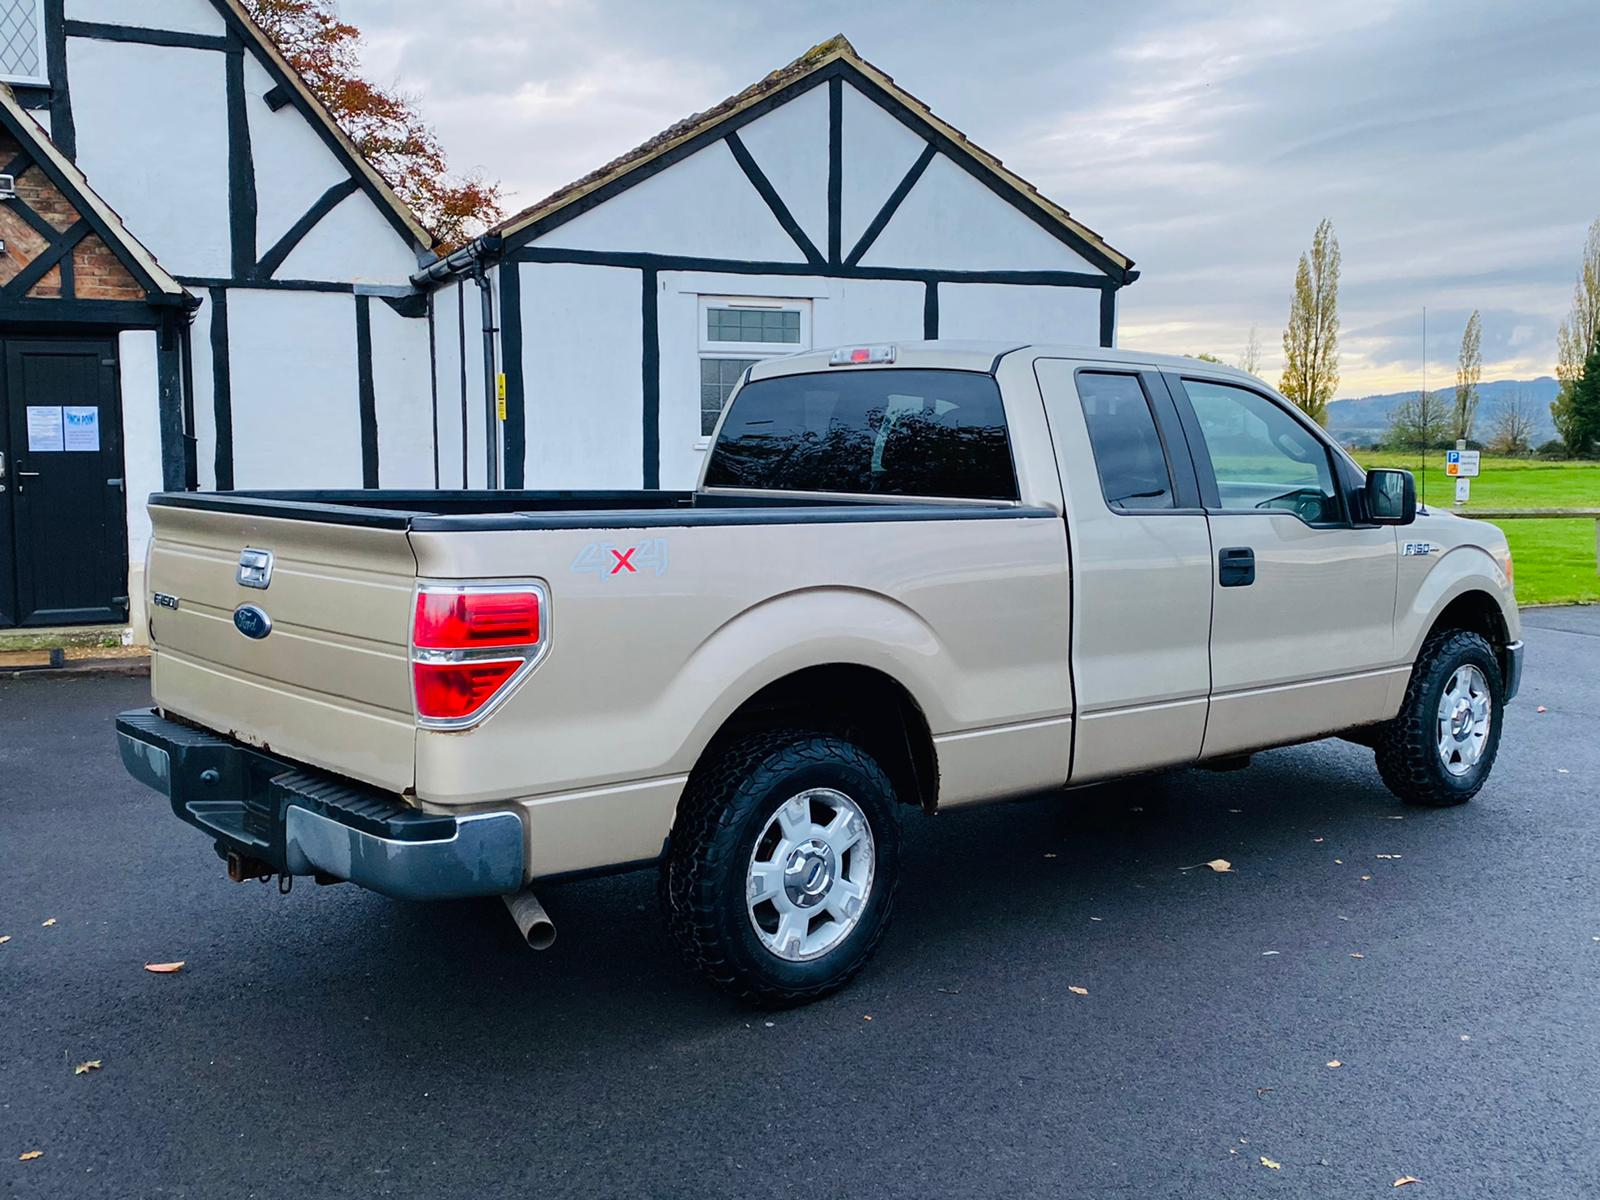 (RESERVE MET) Ford F-150 XLT 4.6L V8 Supercab - 2010 Year - 6 Seats - Fresh Imports - Image 8 of 39